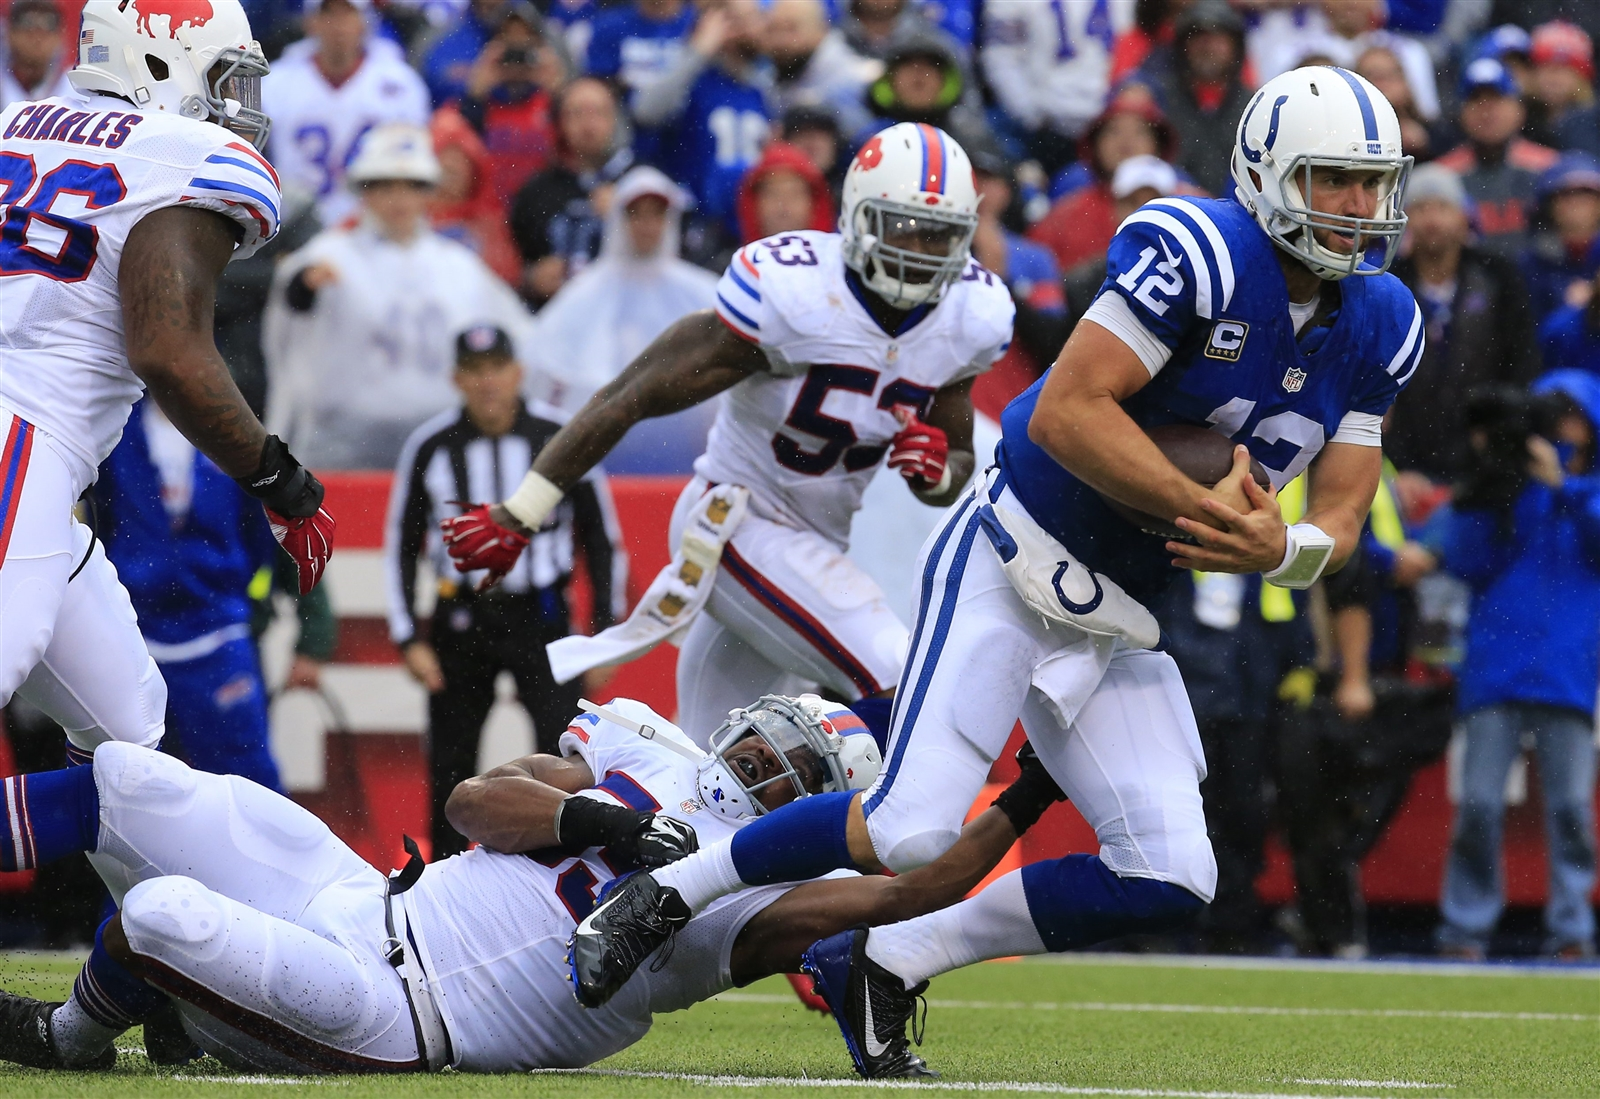 Jerry Hughes tackles Andrew Luck during the fourth quarter. (Harry Scull Jr./Buffalo News)